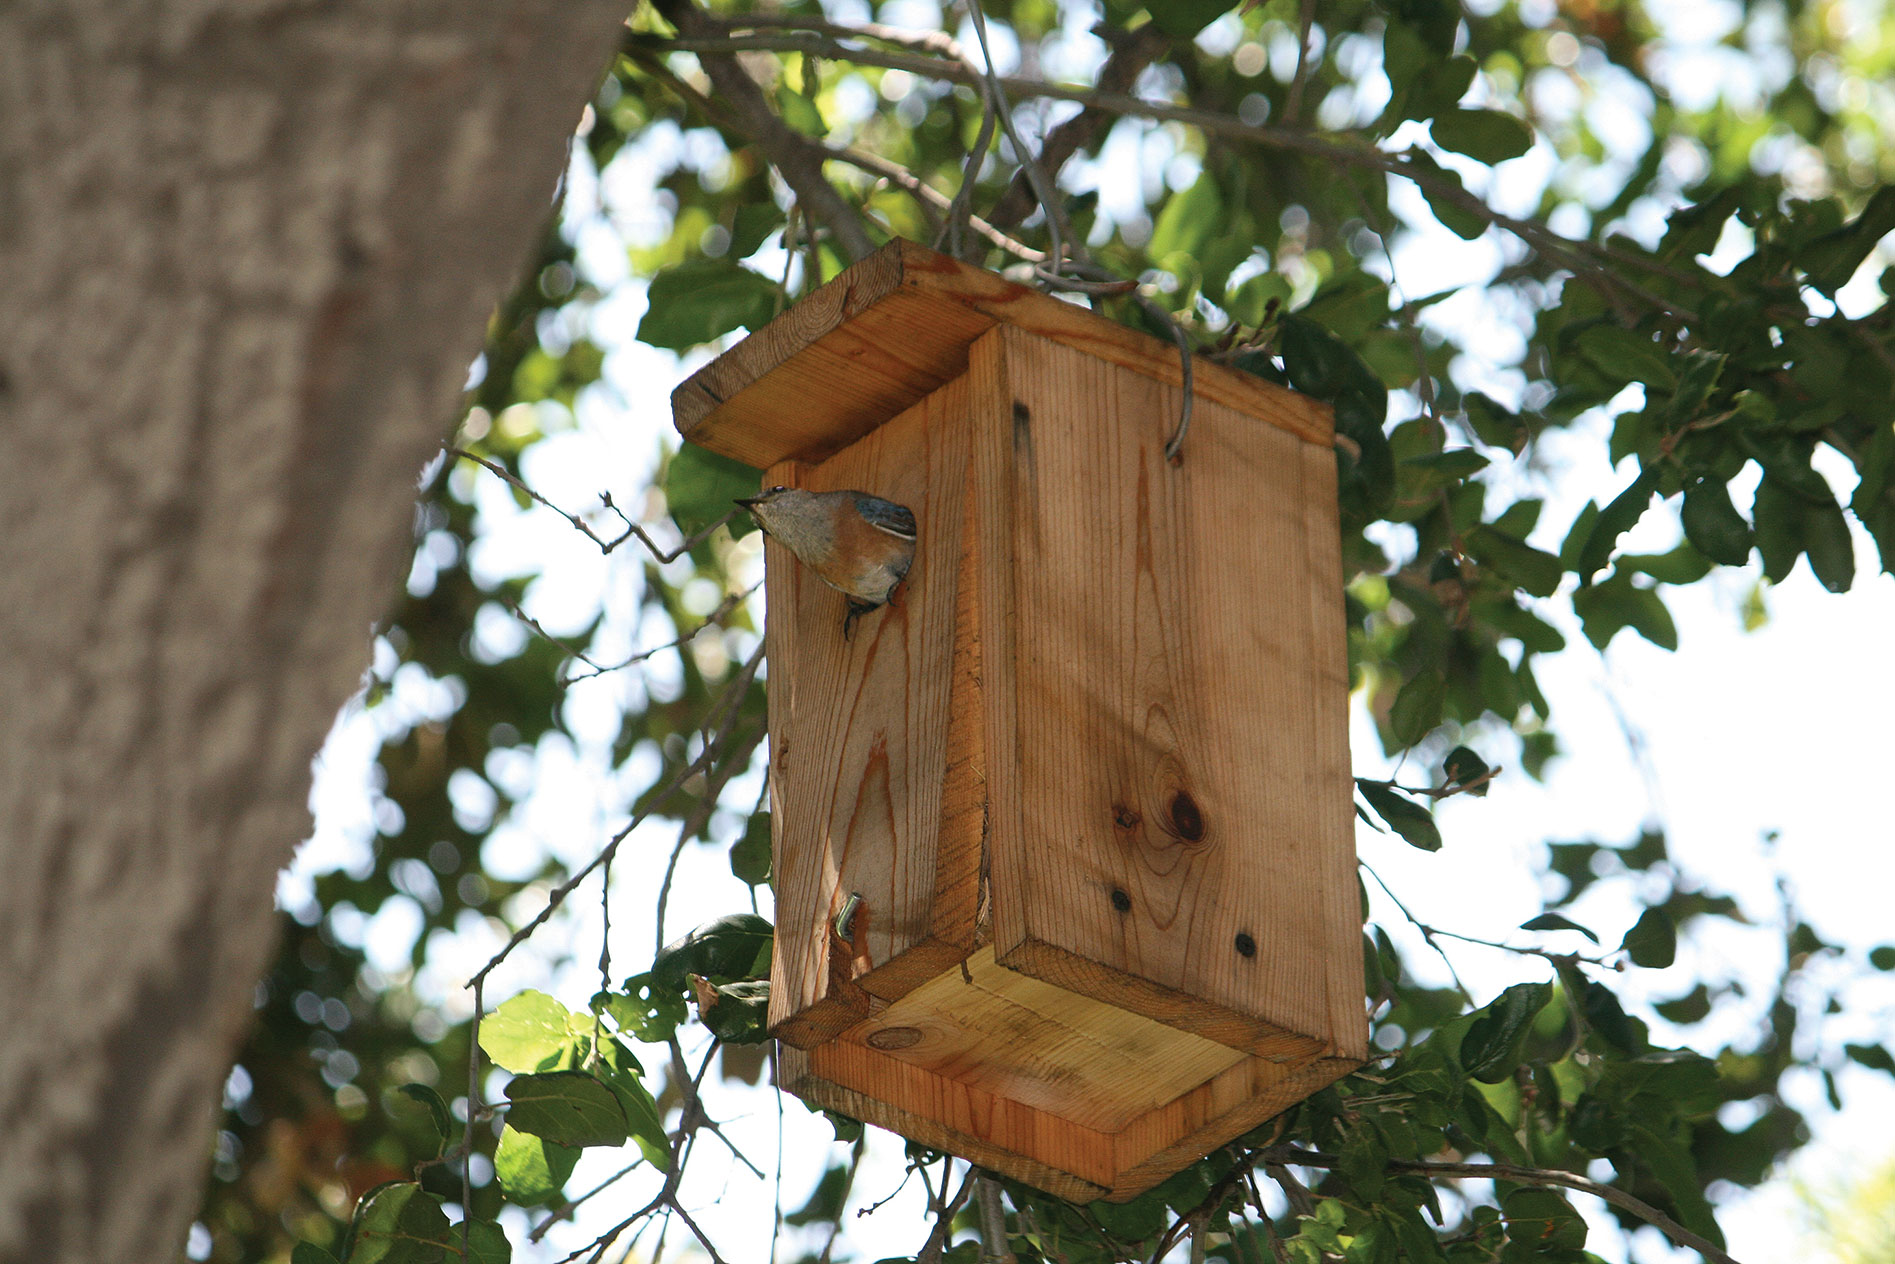 Update: Bluebird Nesting Boxes